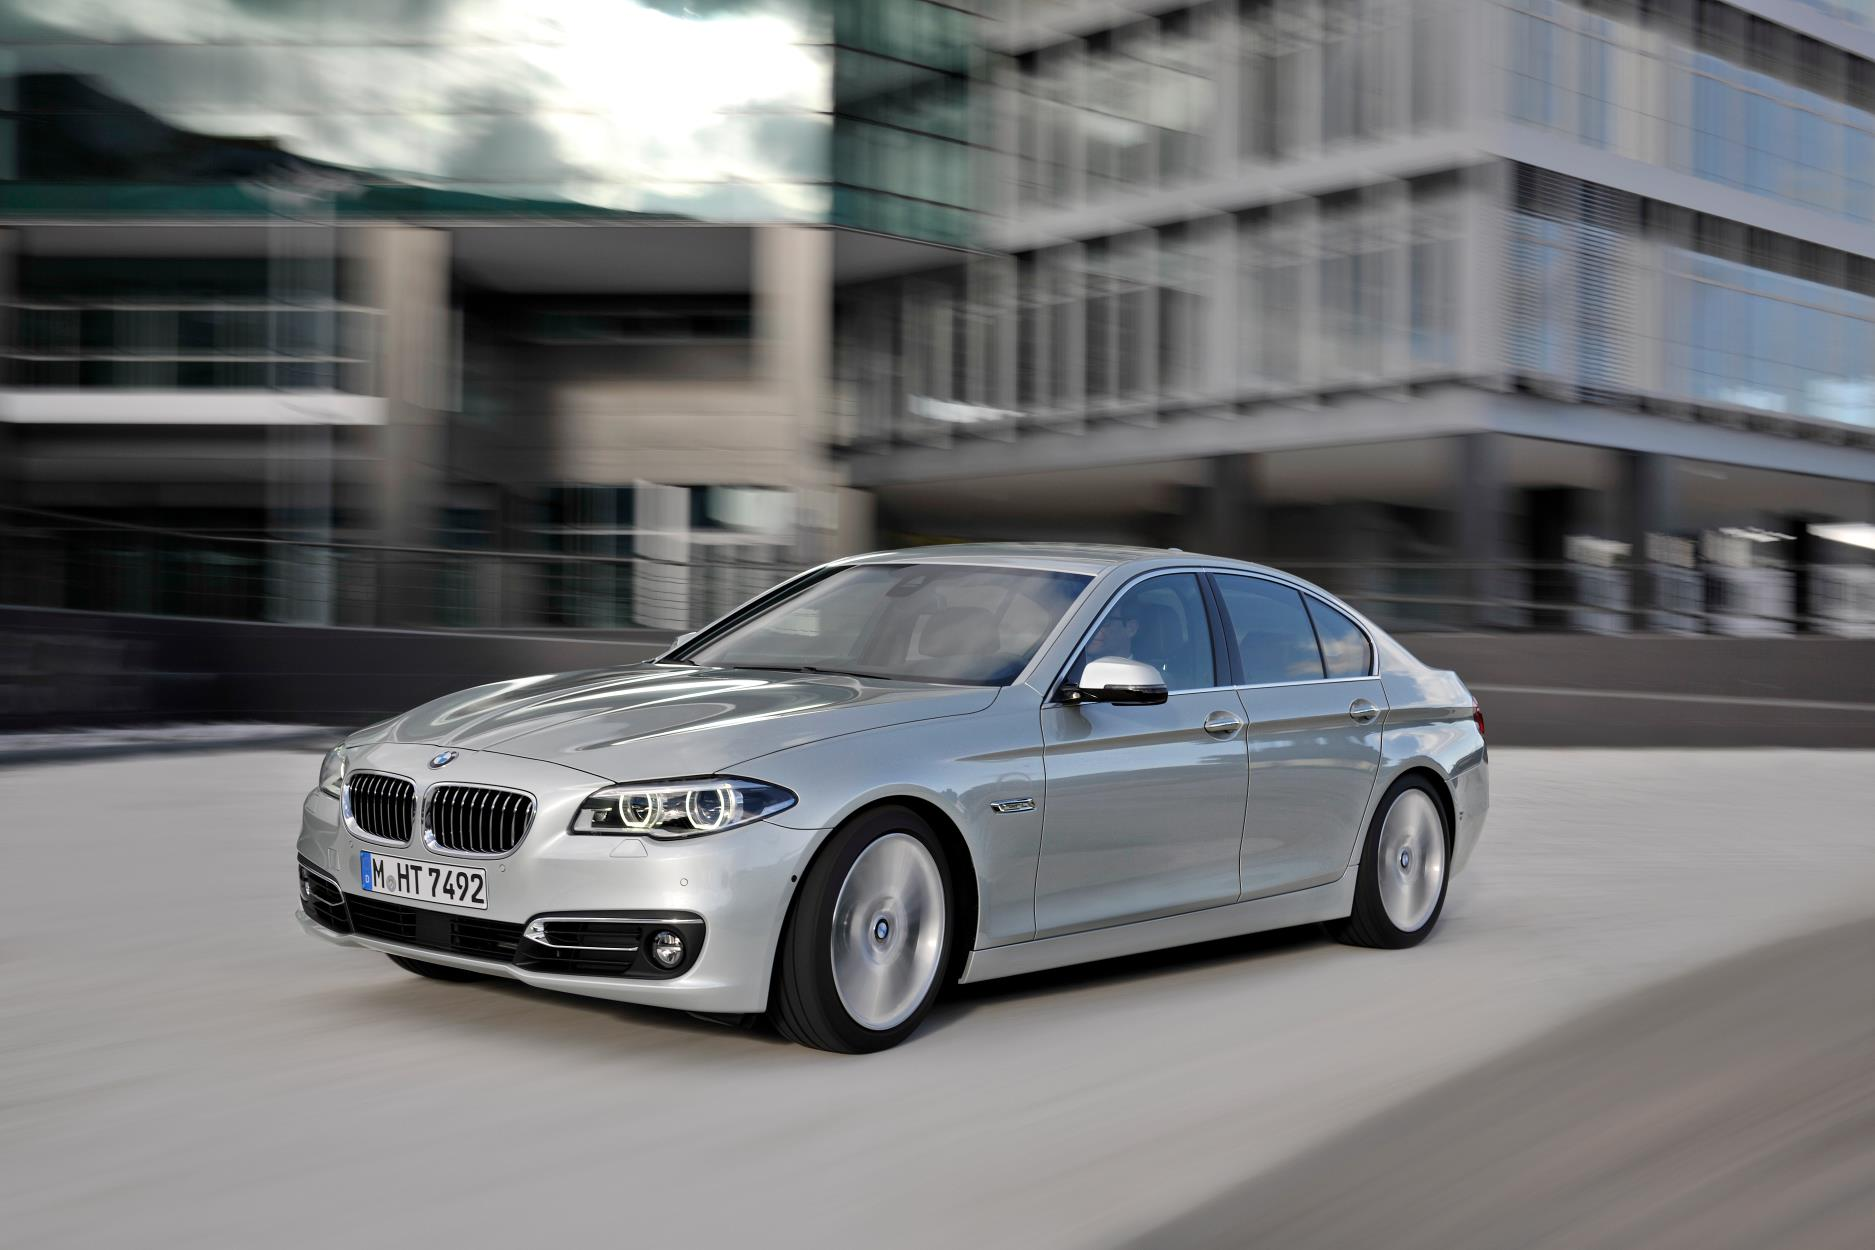 BMW 5 Series Buying Guide (2010-17) (Model: F10) | Carsnip